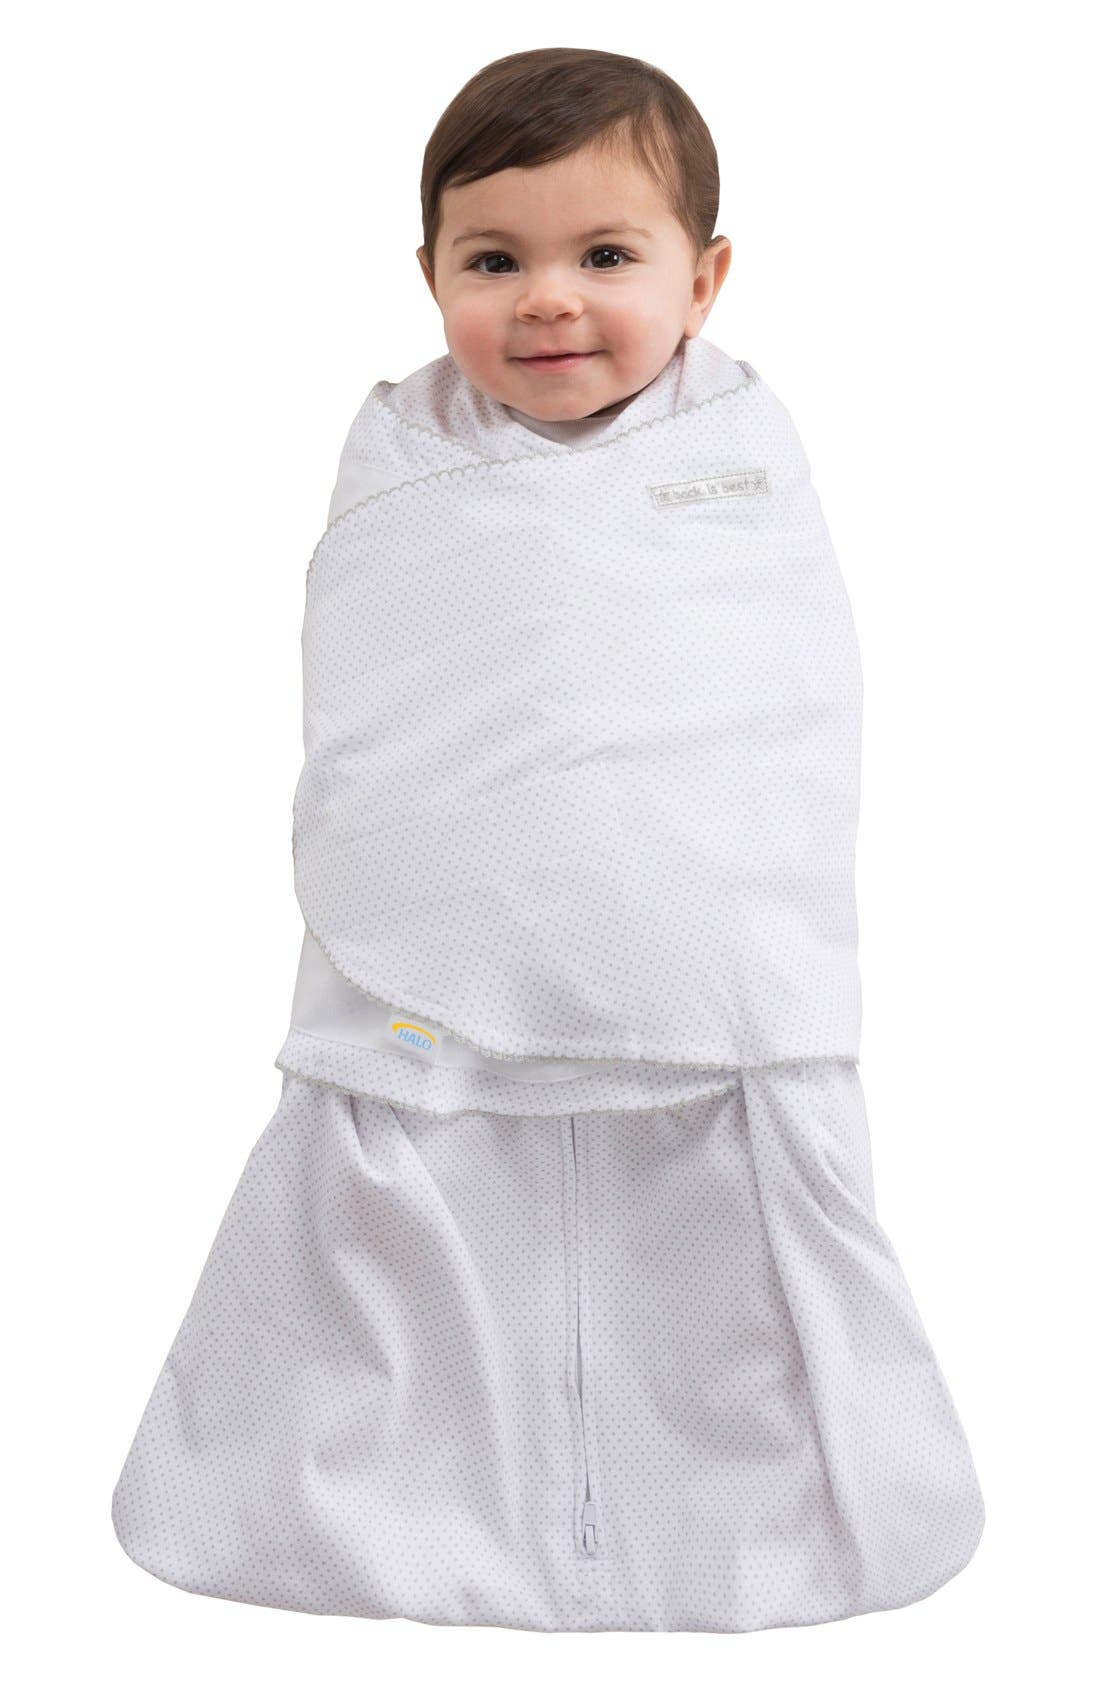 Main Image - Halo Innovations Wearable Swaddle Blanket (Baby)